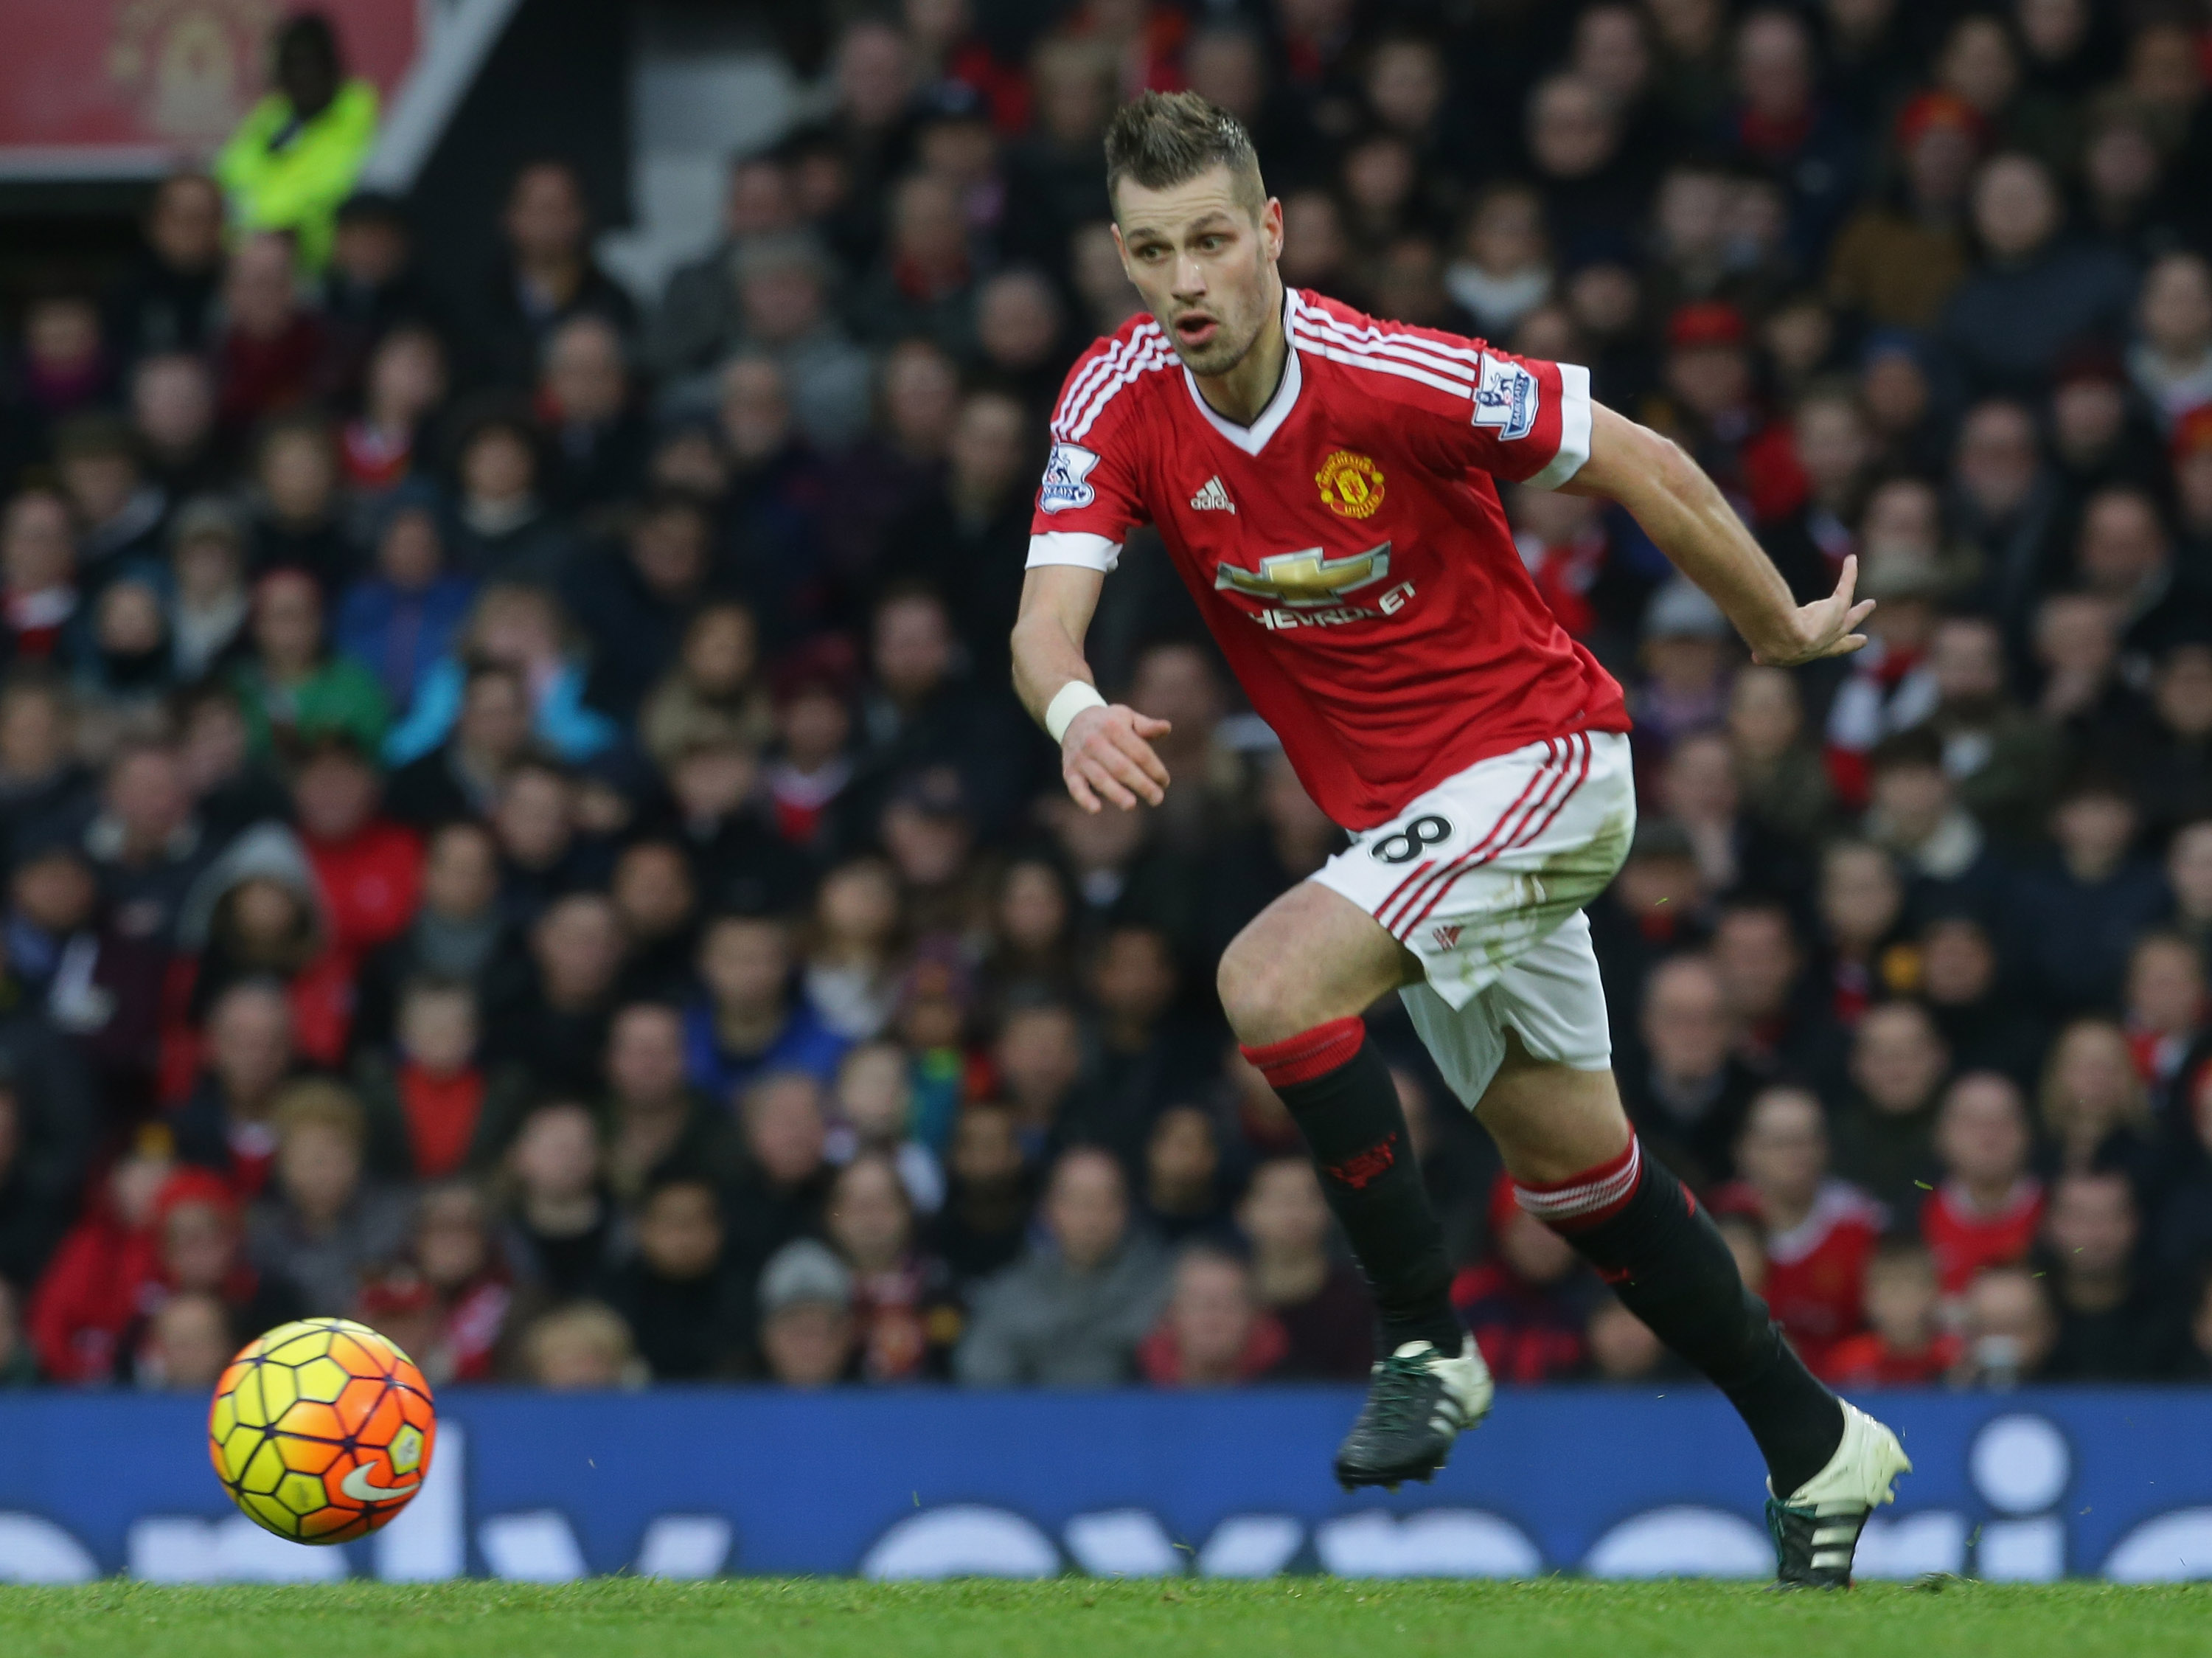 Manchester United reject £19 million Everton bid for Morgan Schneiderlin